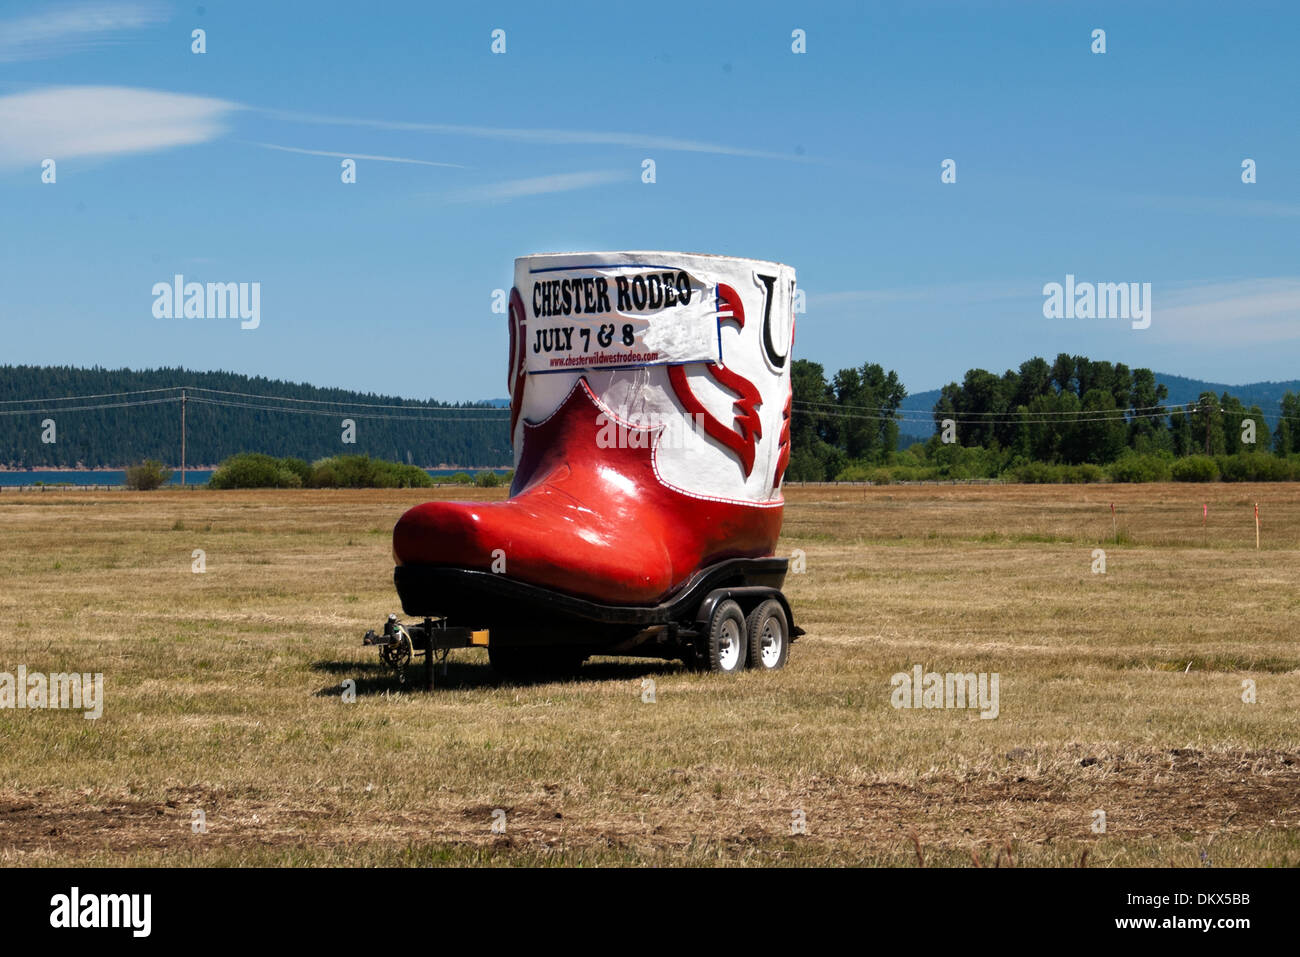 Enormous boot advertising Rodeo - Stock Image